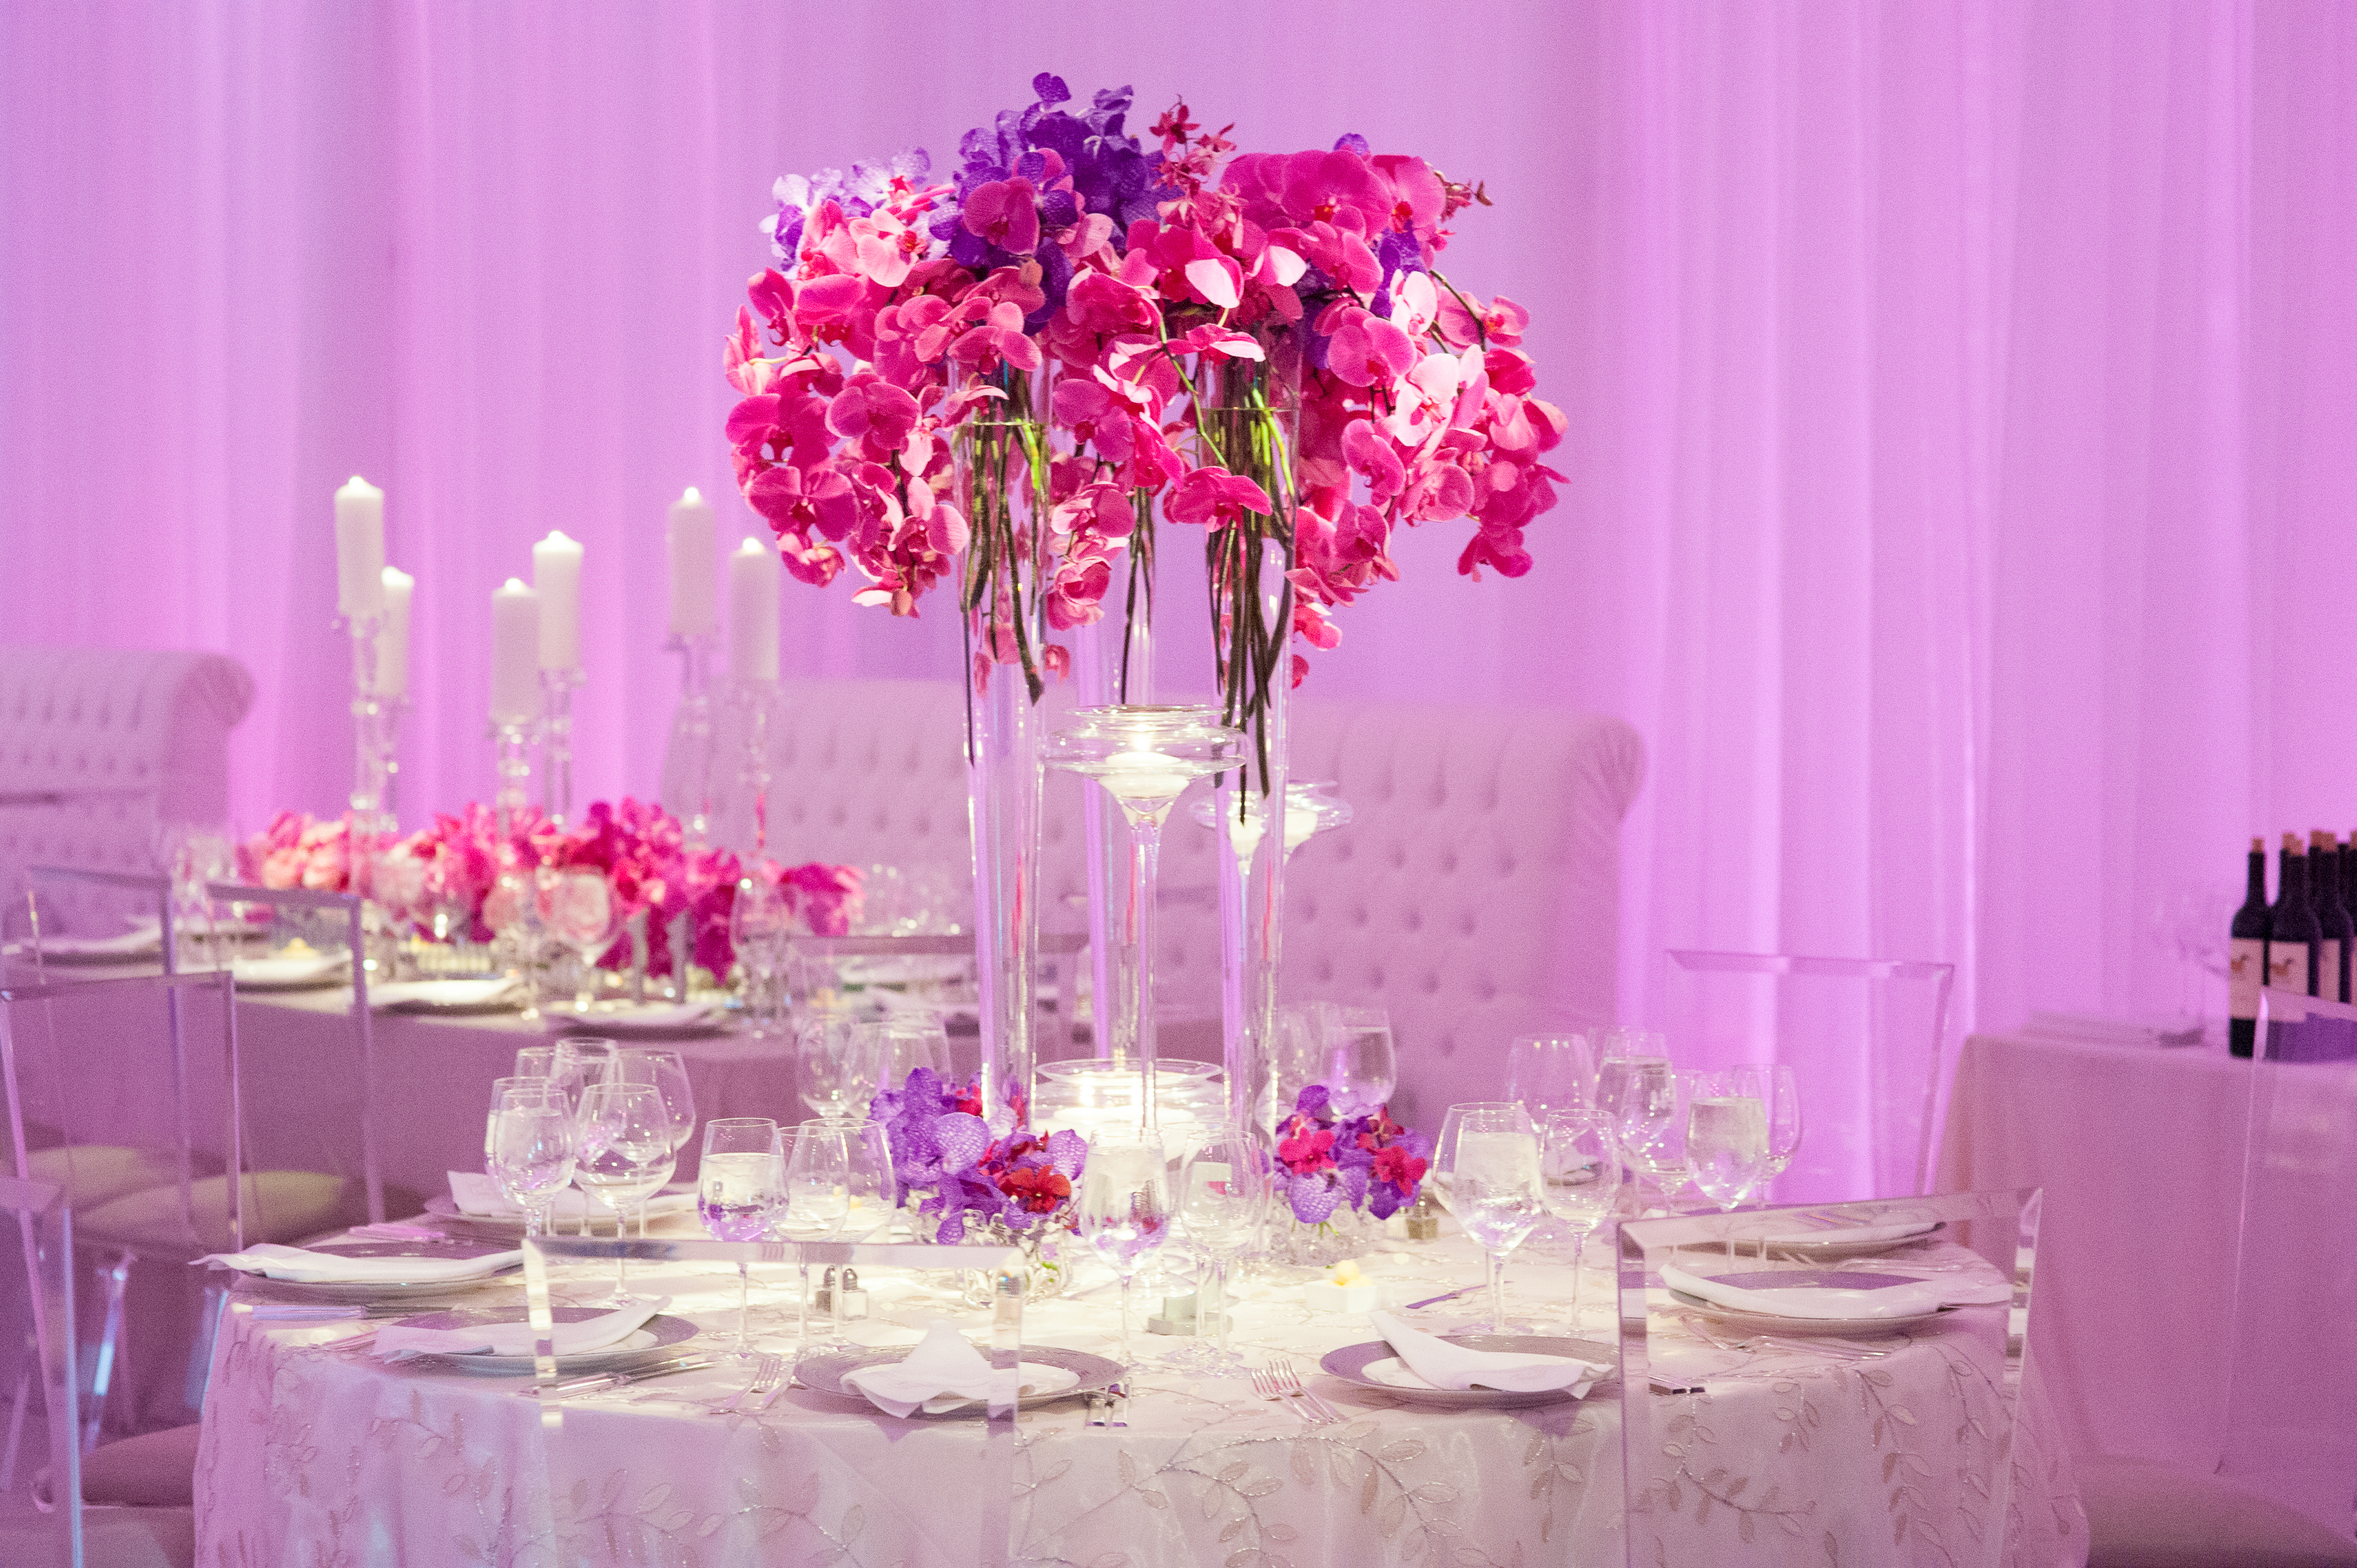 Pretty In Pink-Tented Wedding - Suzanne B. Lowell Lighting Design